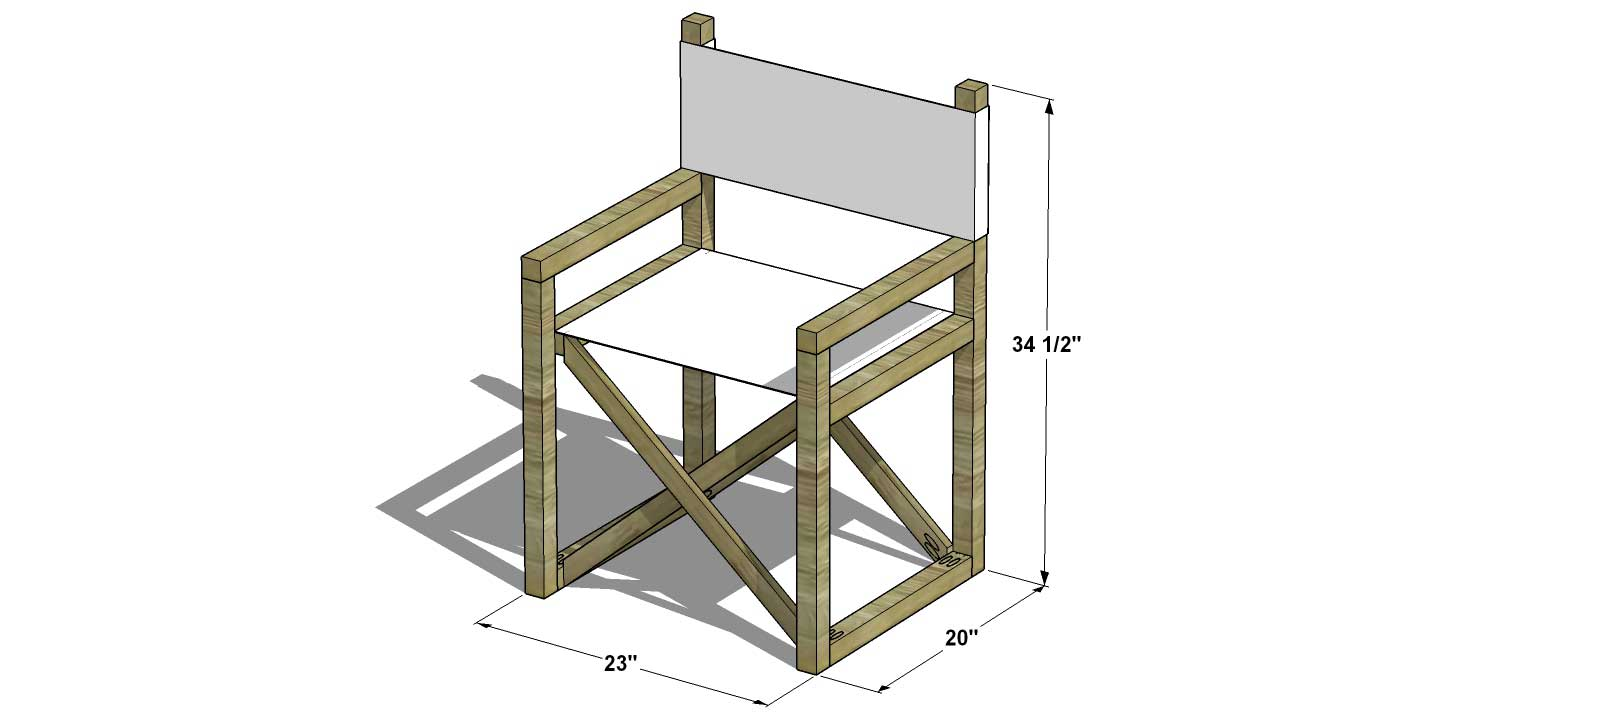 you can build this easy diy furniture plans from the design with complete